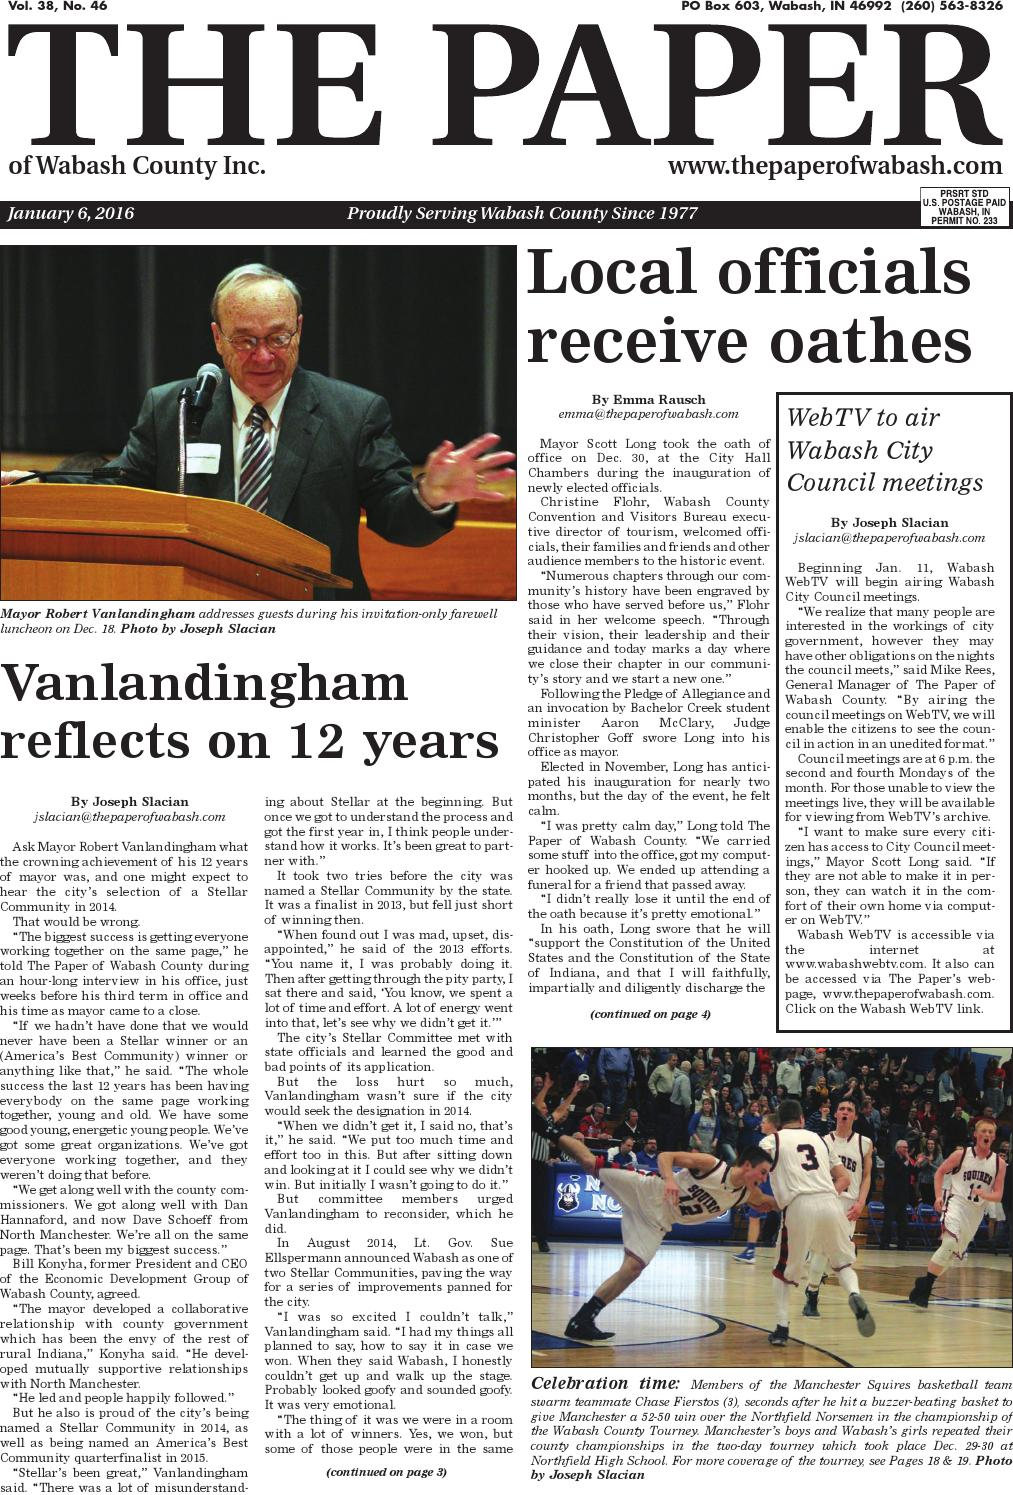 The Paper of Wabash County - Jan. 6, 2016, issue by The Paper of ...